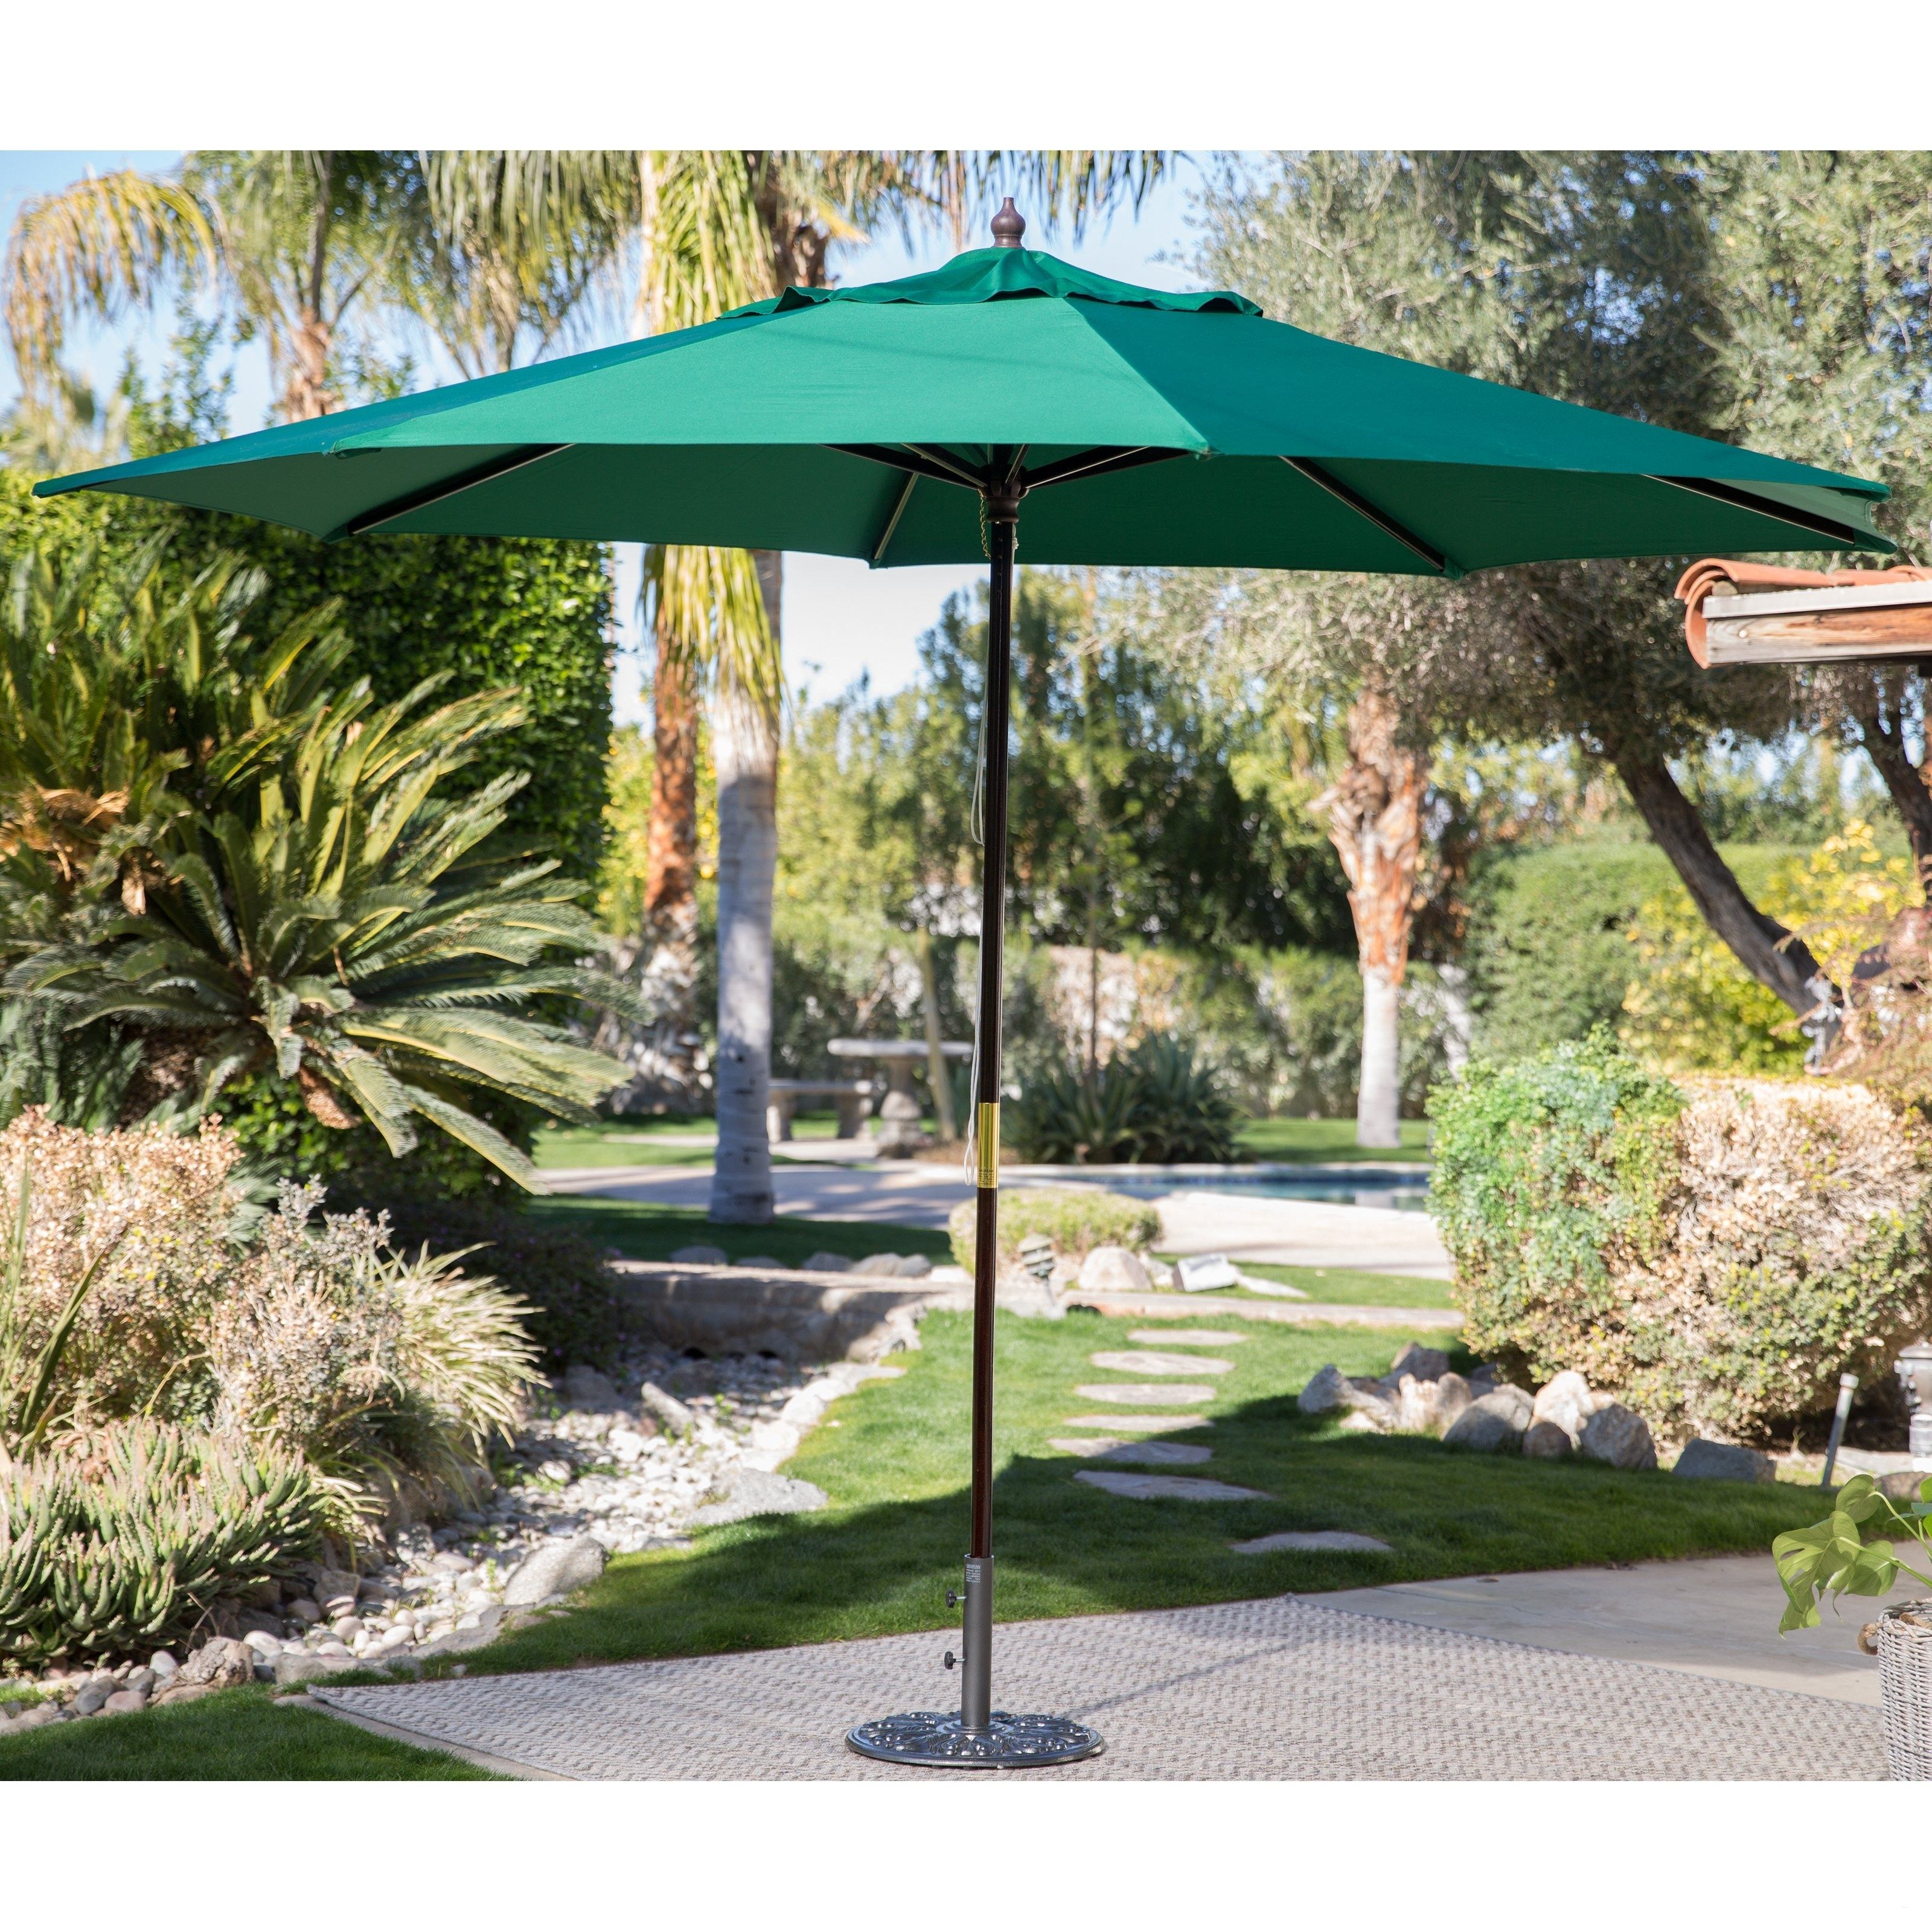 Most Up To Date Sunbrella Patio Umbrella – Popular For Families Who Have Been Regarding Sunbrella Patio Umbrellas (View 15 of 20)